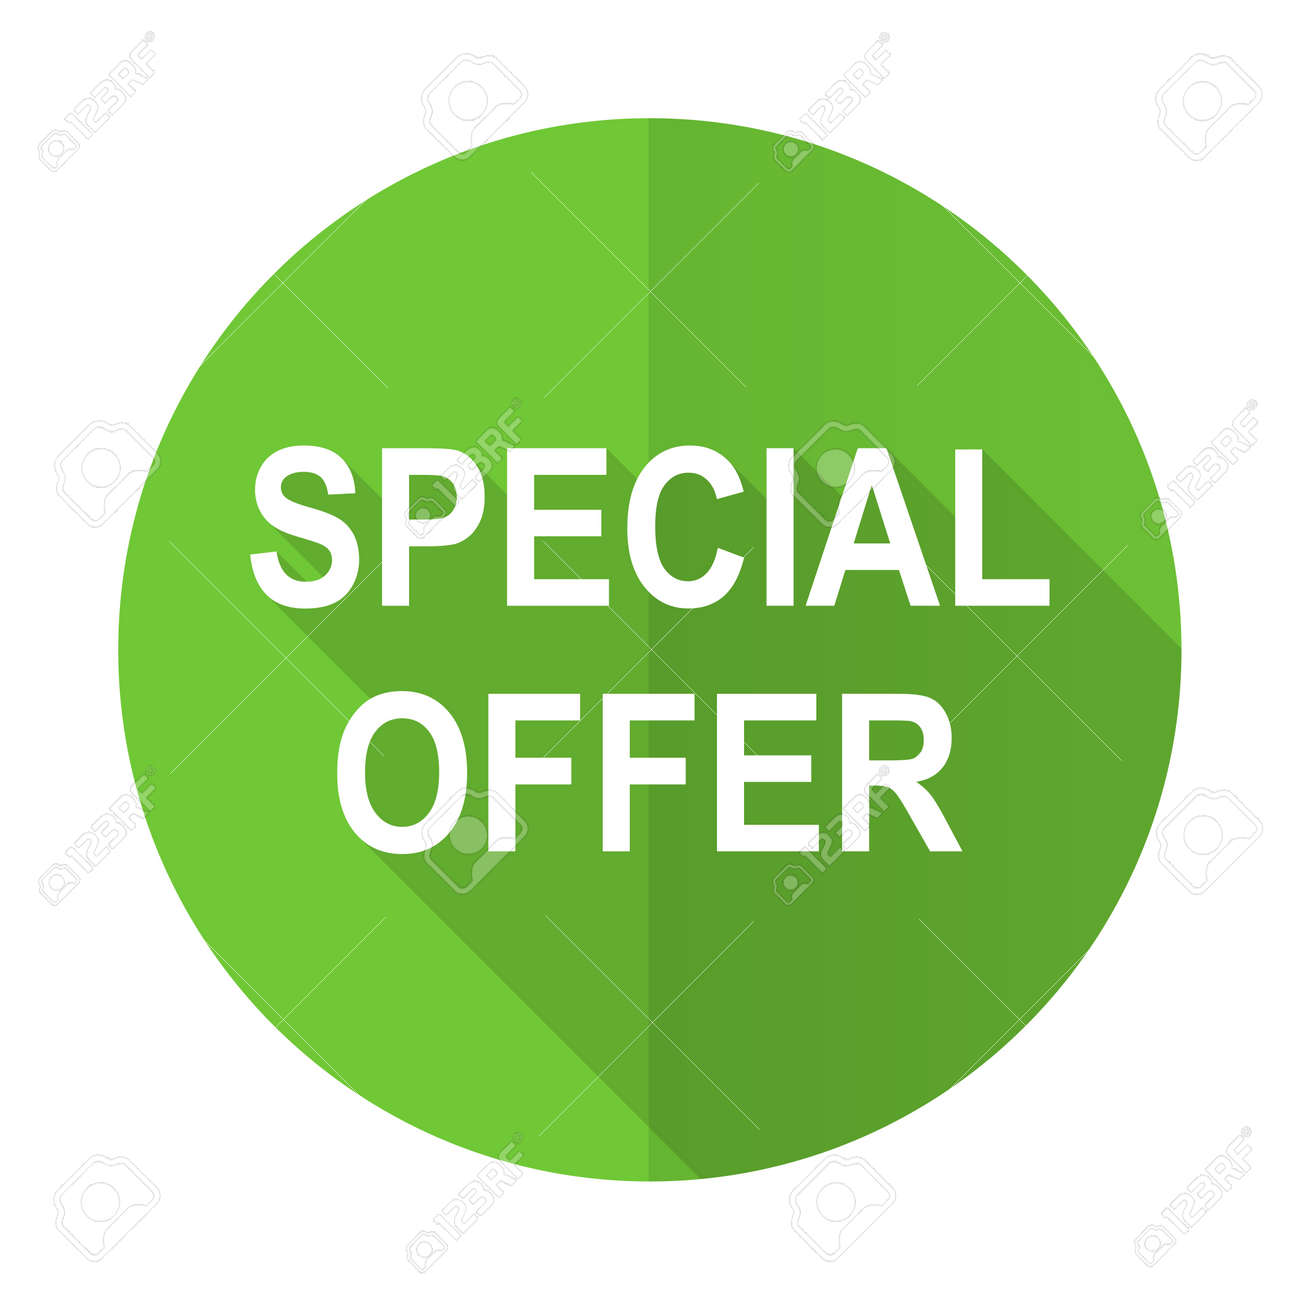 Special Offer Green Flat Icon Stock Photo Picture And Royalty Free Image Image 38144101